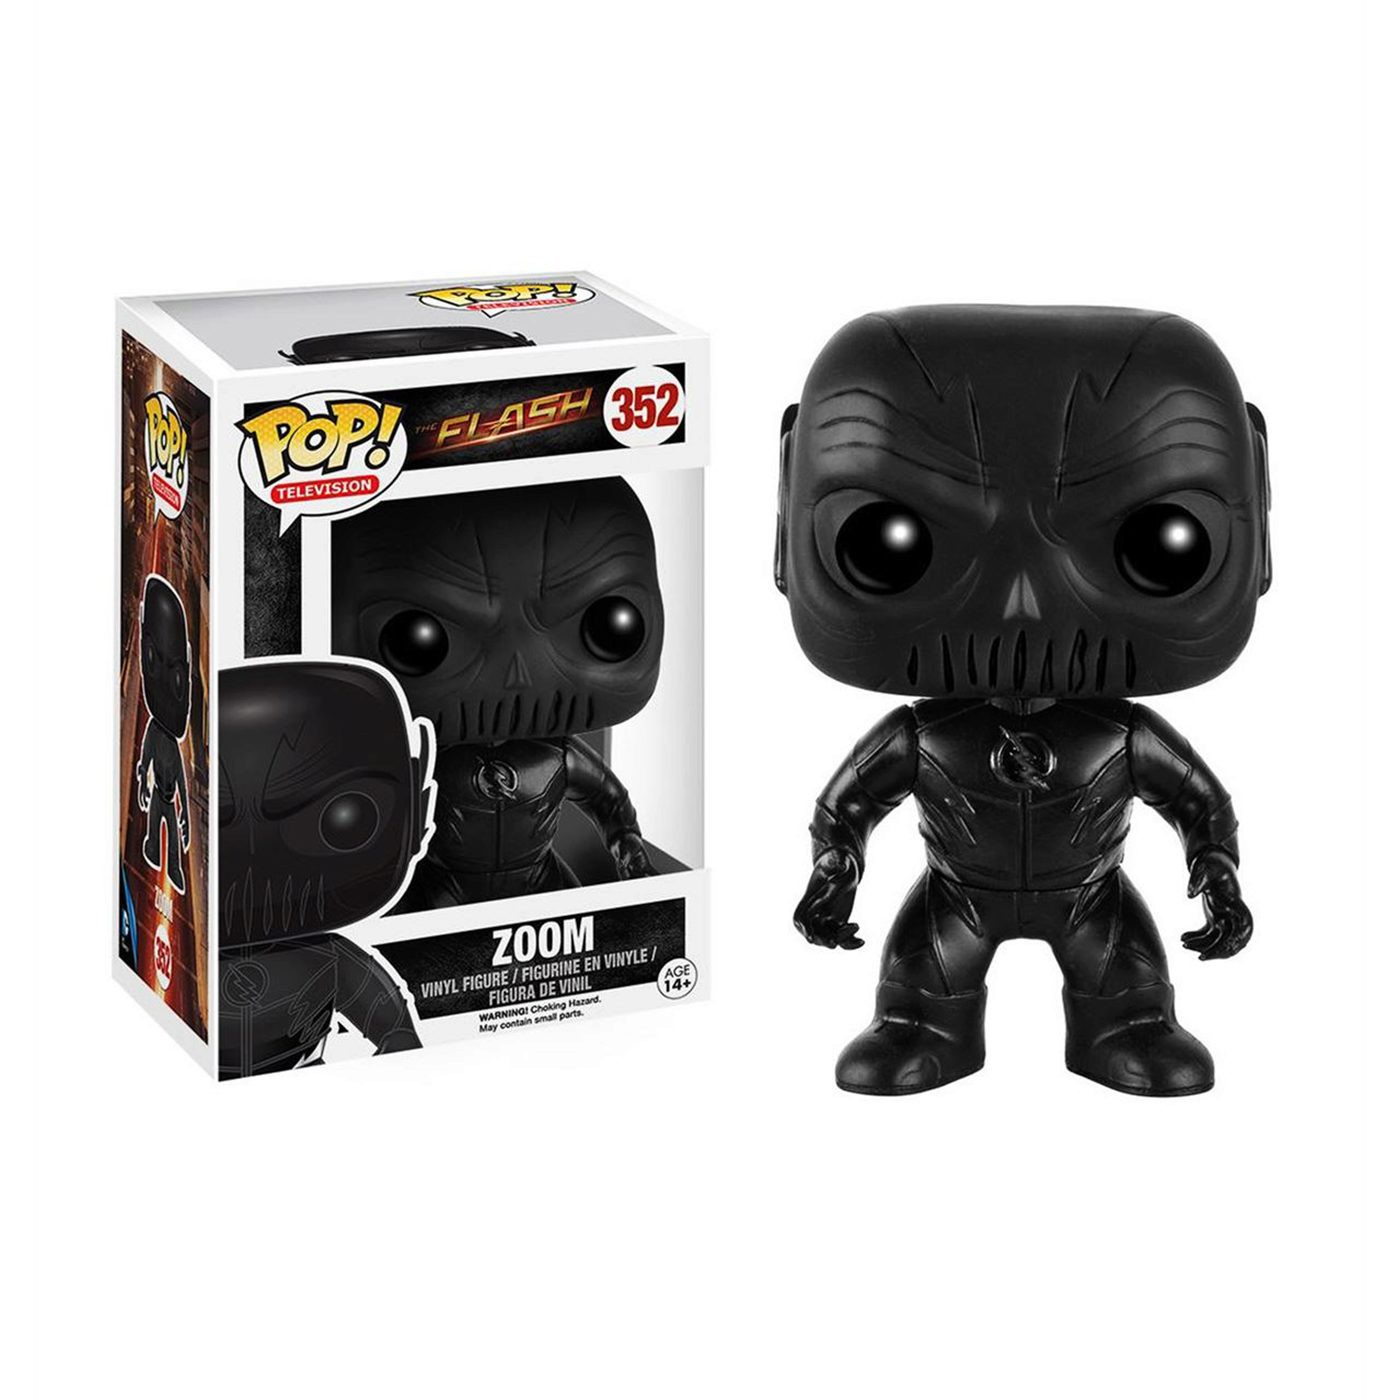 Flash Zoom Funko Pop Vinyl Figure